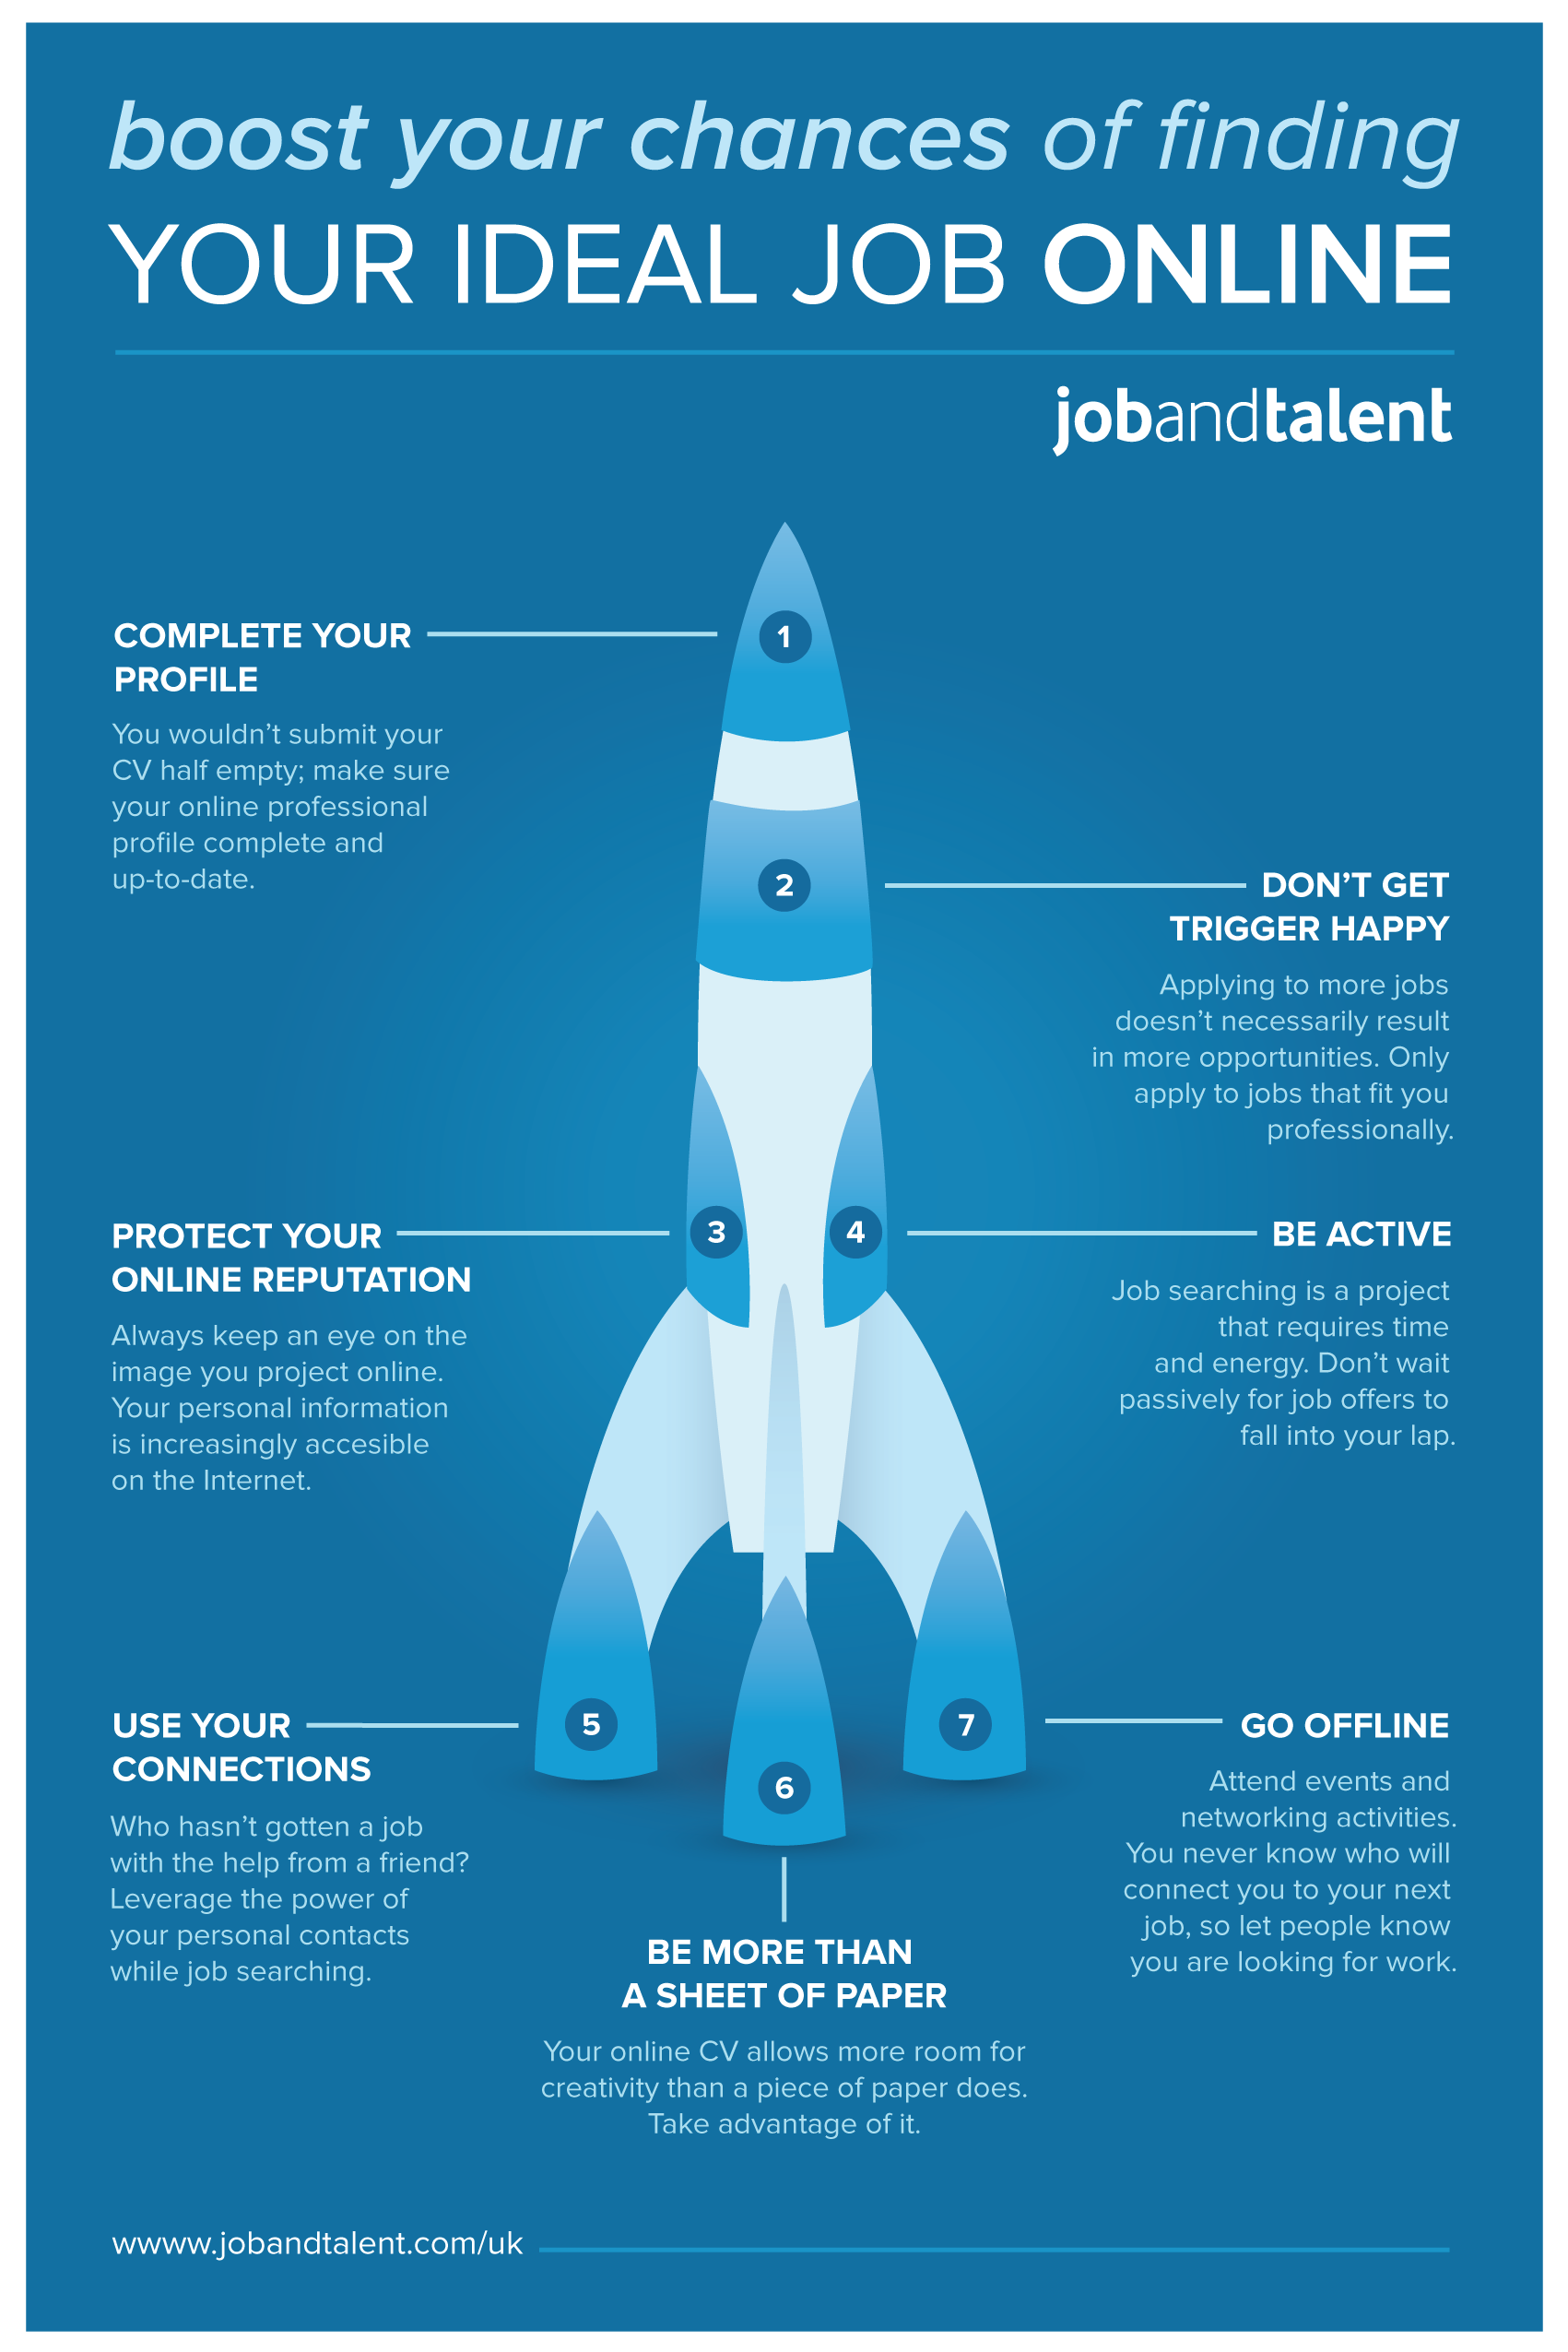 Boost your chances of finding your ideal job online | Visual.ly